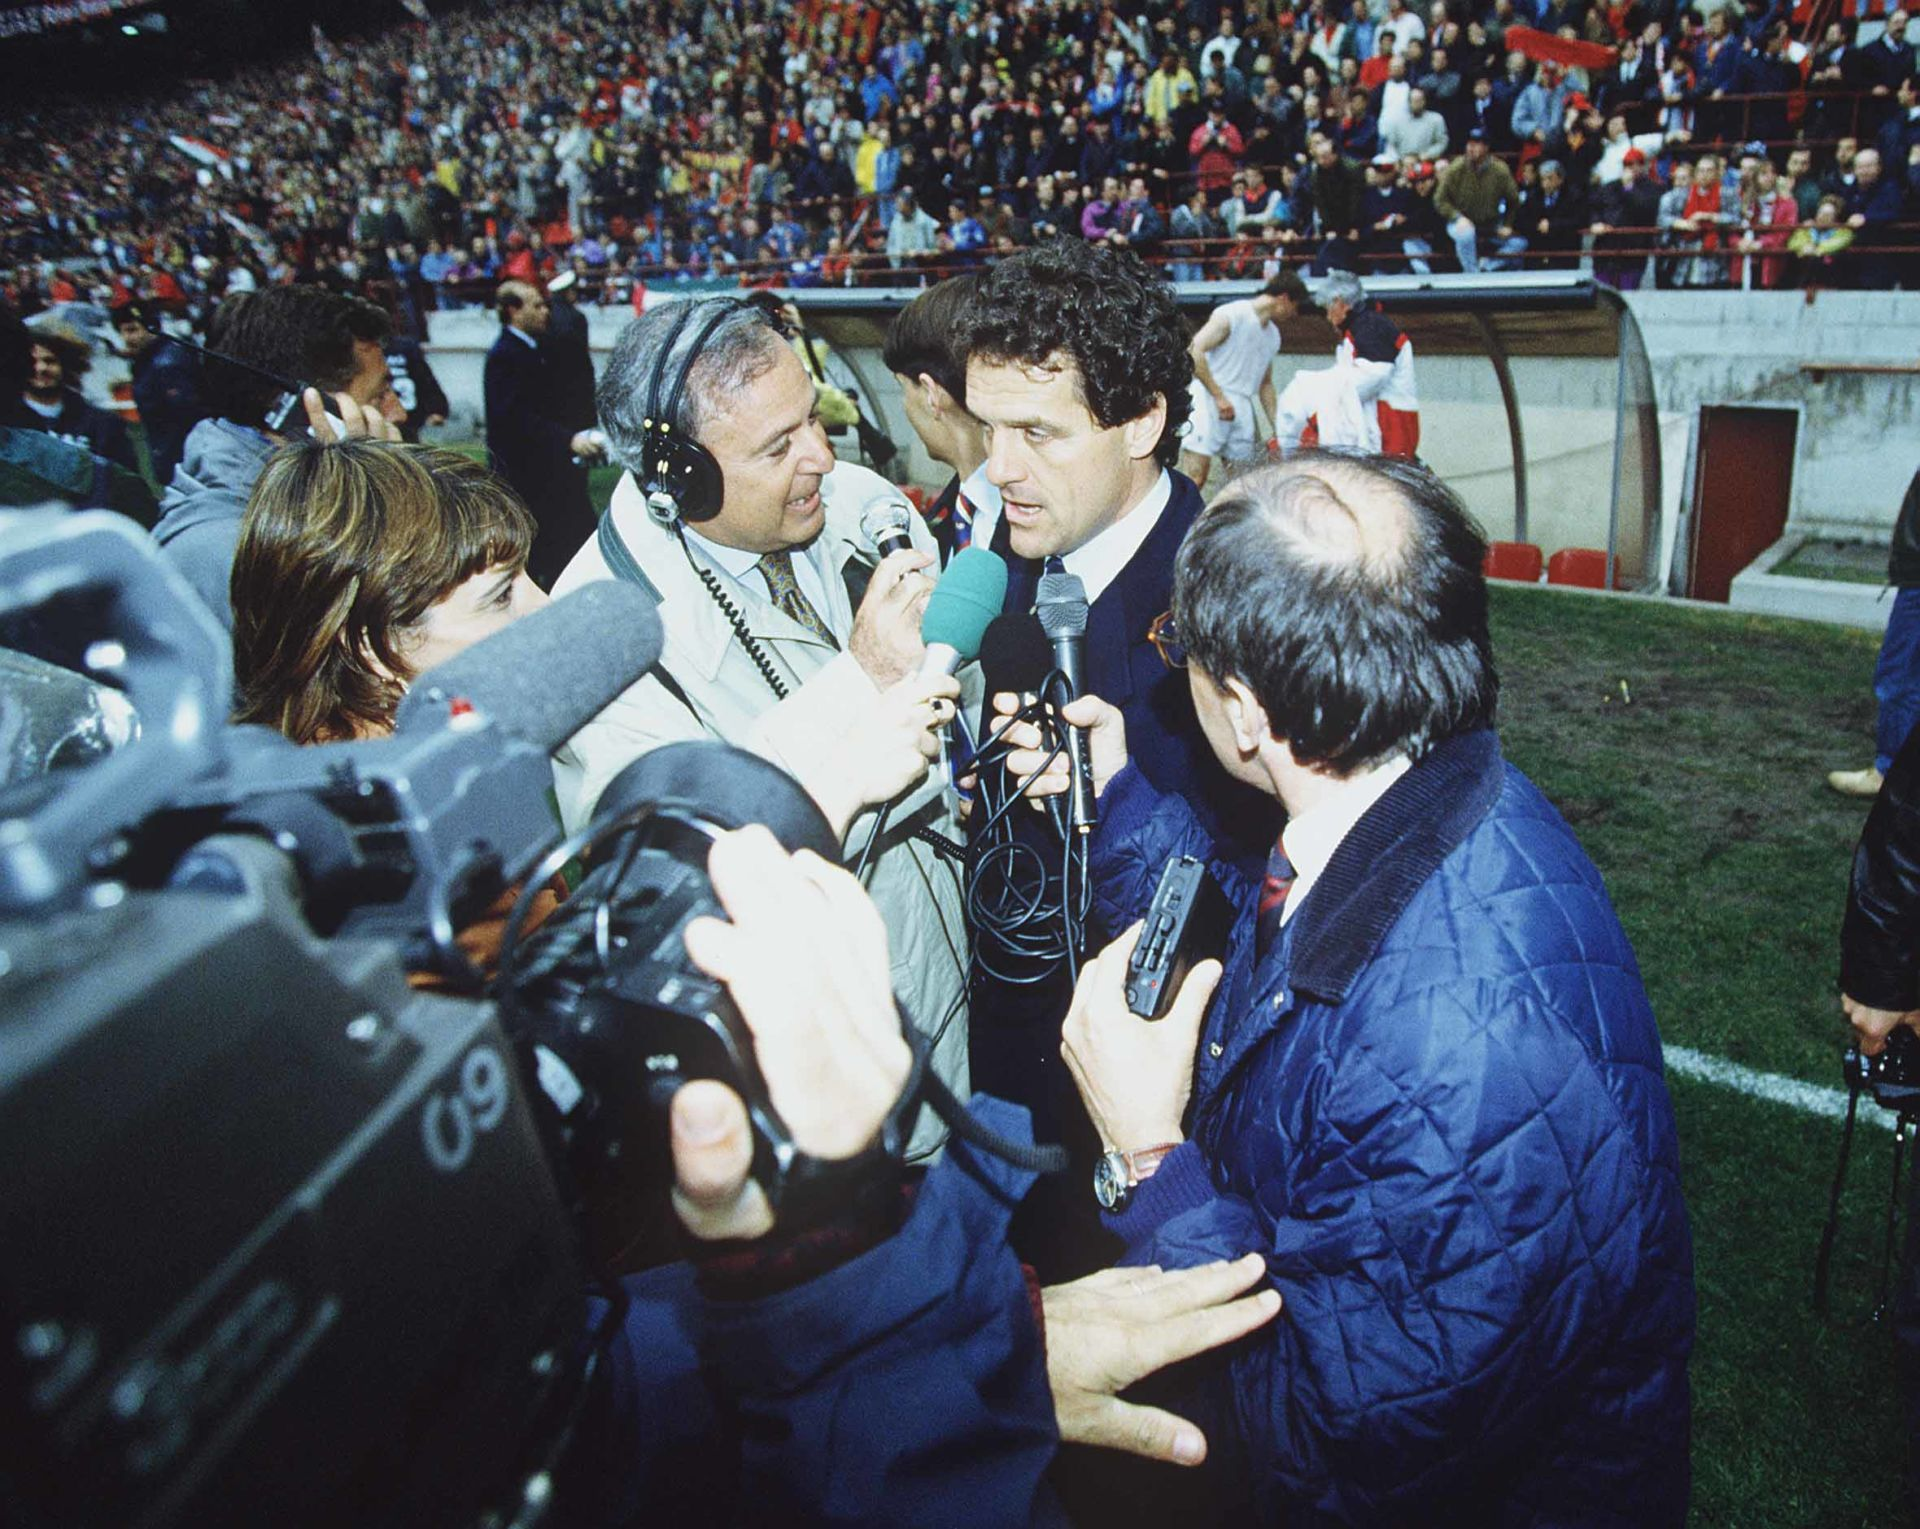 "Fabio Capello (Milan), APRIL 17, 1994 - Football / Soccer : AC Milan head coach Fabio Capello is interviewed after winning their 14th Serie A league title ""Scudetto"" after the Italian ""Serie A"" match between AC Milan 2-2 Udinese at Stadio Giuseppe Meazza in Milan, Italy. (Photo by Maurizio Borsari/AFLO) [0855] LIGA WLOSKA SERIE A PILKA NOZNA ARCHIWALNE FOT AFLO/NEWSPIX.PL POLAND ONLY !!! --- Newspix.pl *** Local Caption *** www.newspix.pl mail us: info@newspix.pl call us: 0048 022 23 22 222 --- Polish Picture Agency by Ringier Axel Springer Poland"